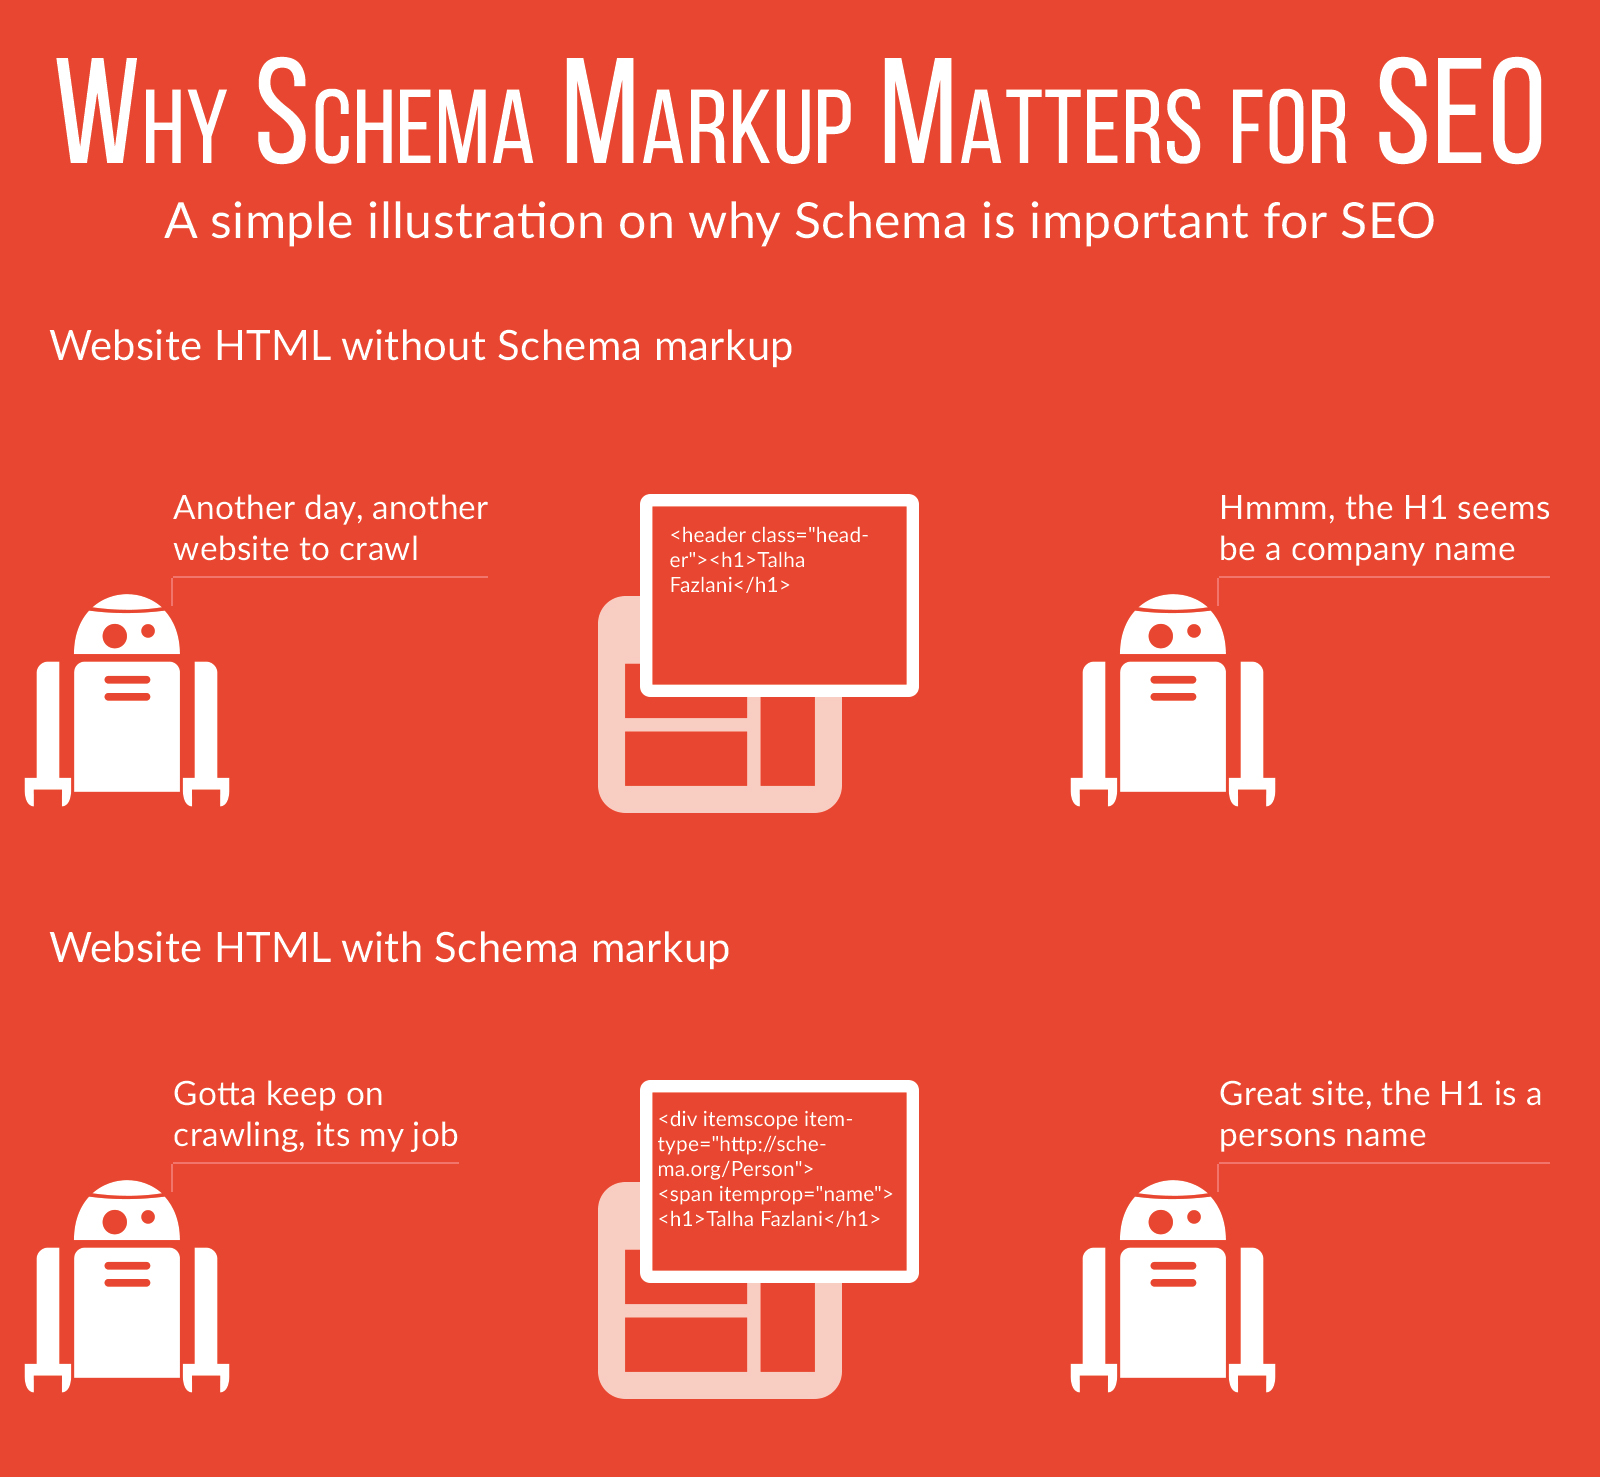 schema markup are an example of many indirect on-page seo factors